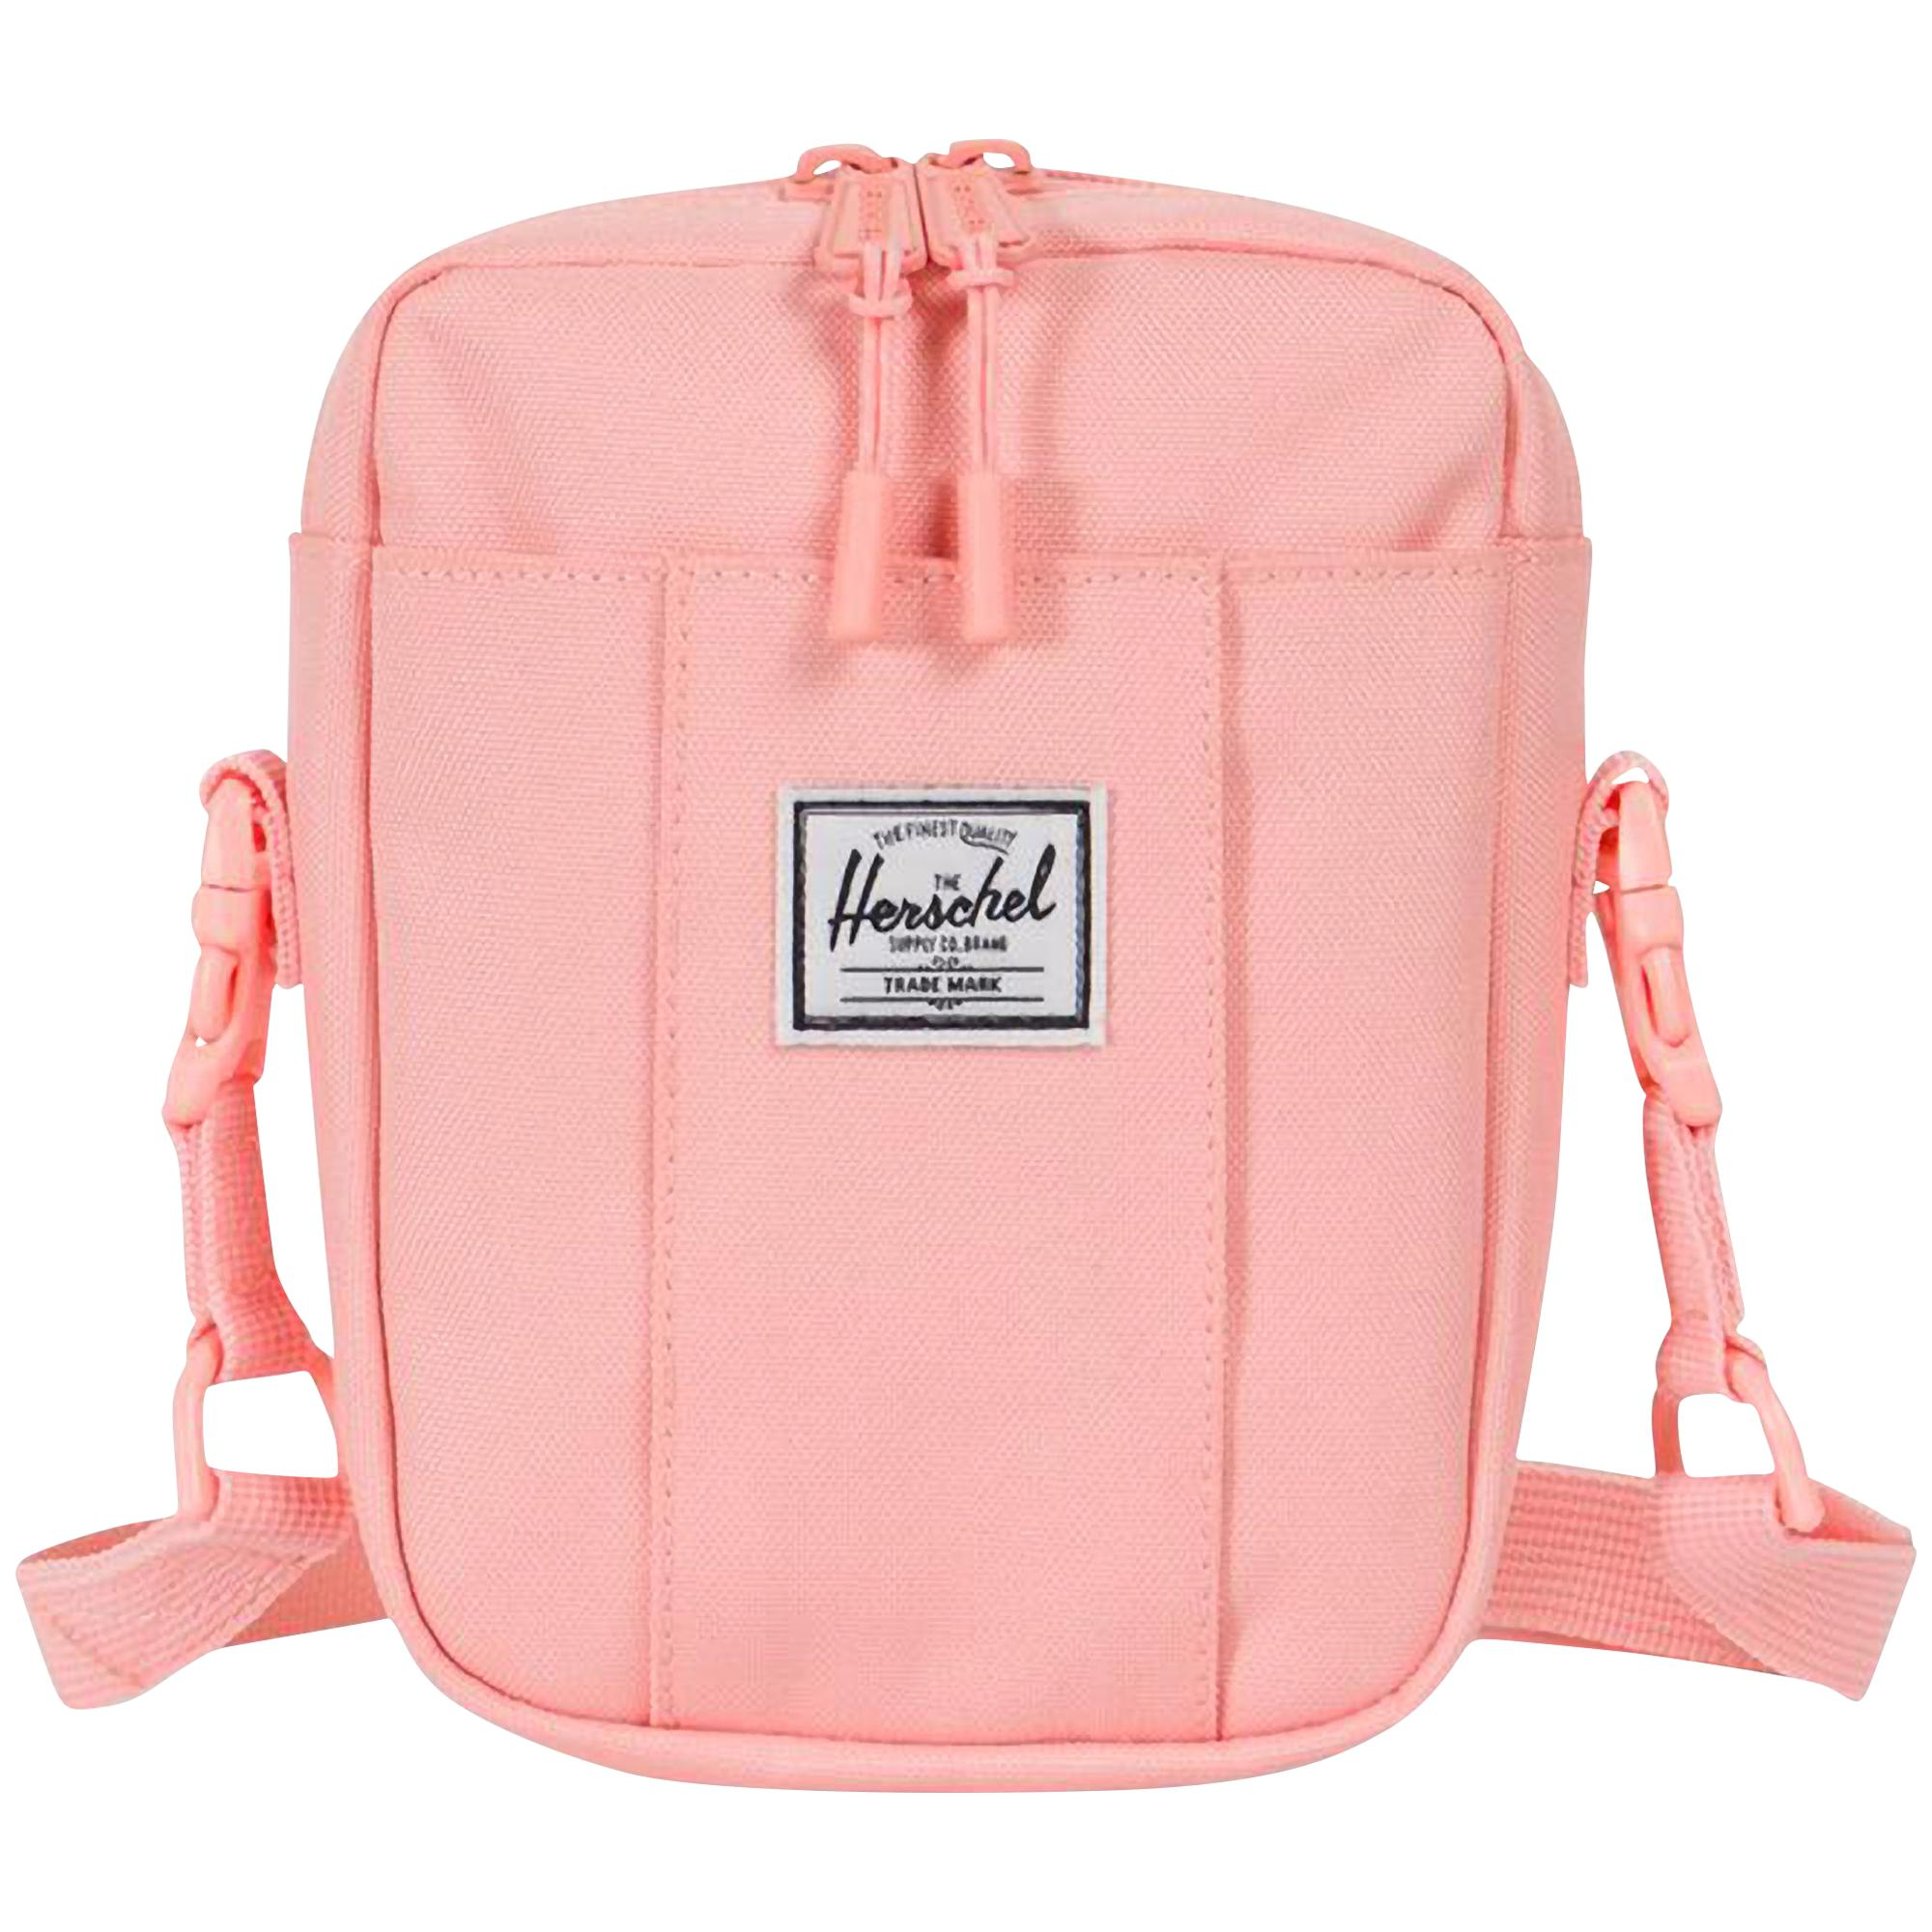 Lyst - Herschel Supply Co. Cruz Crossbody in Pink eaa74f4015ff6